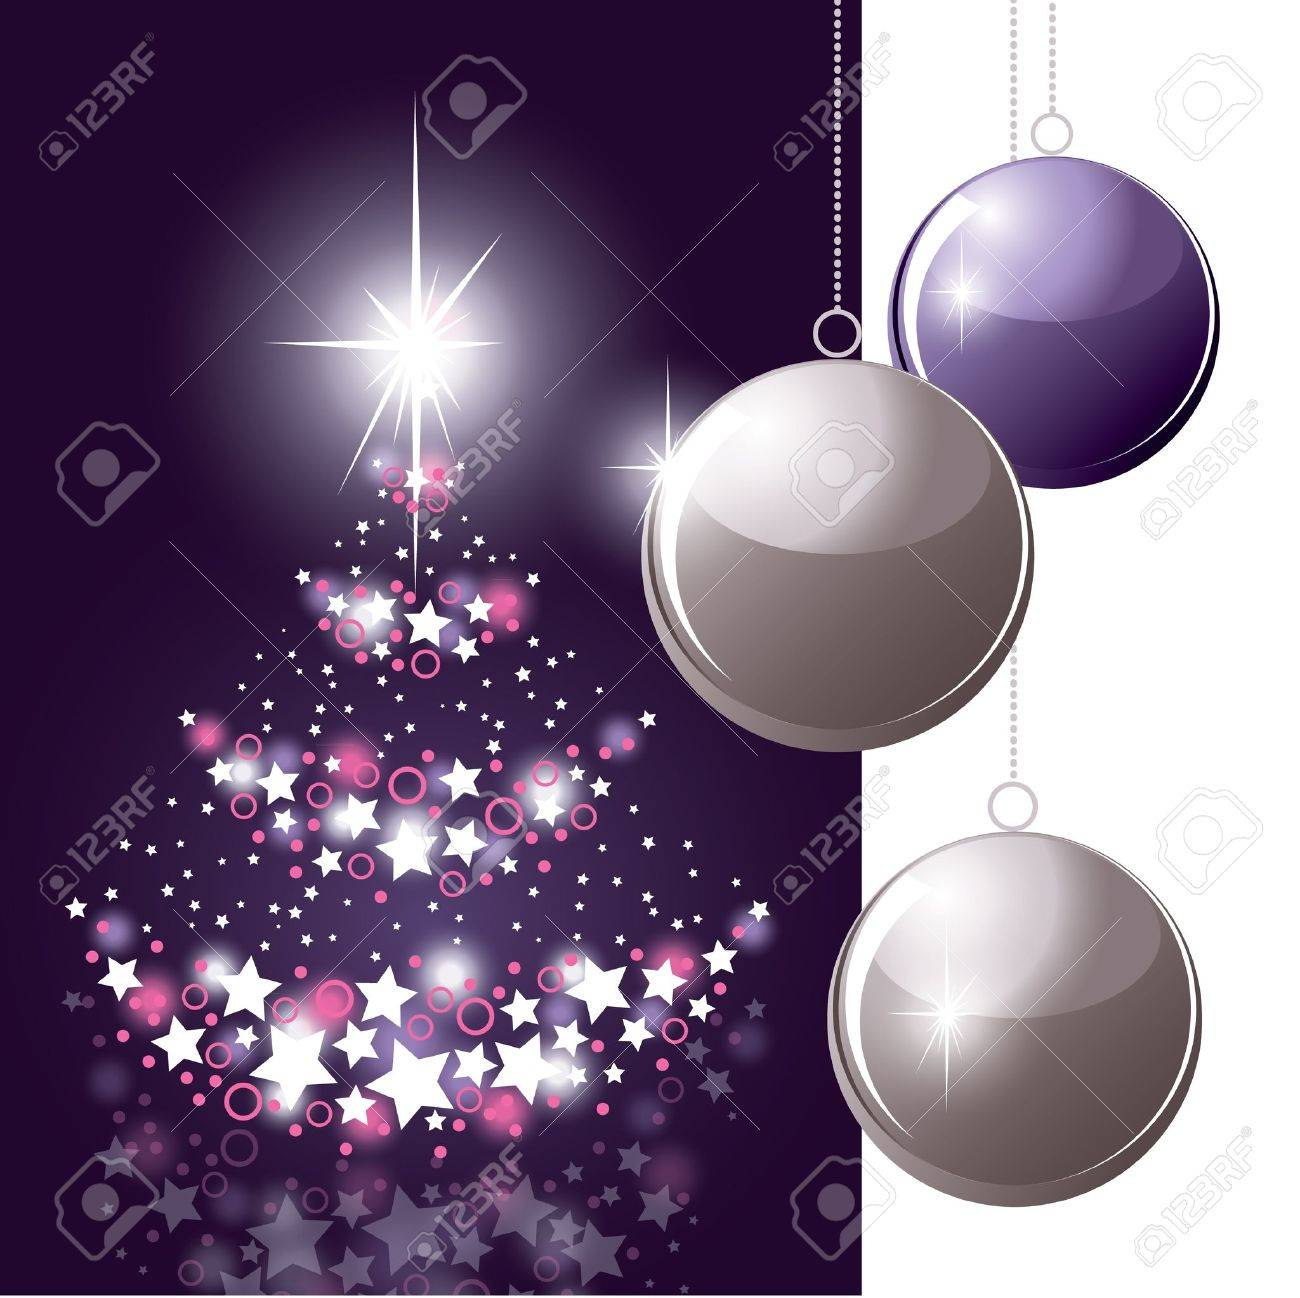 Christmas Background  Abstract Illustration Stock Vector - 15035759